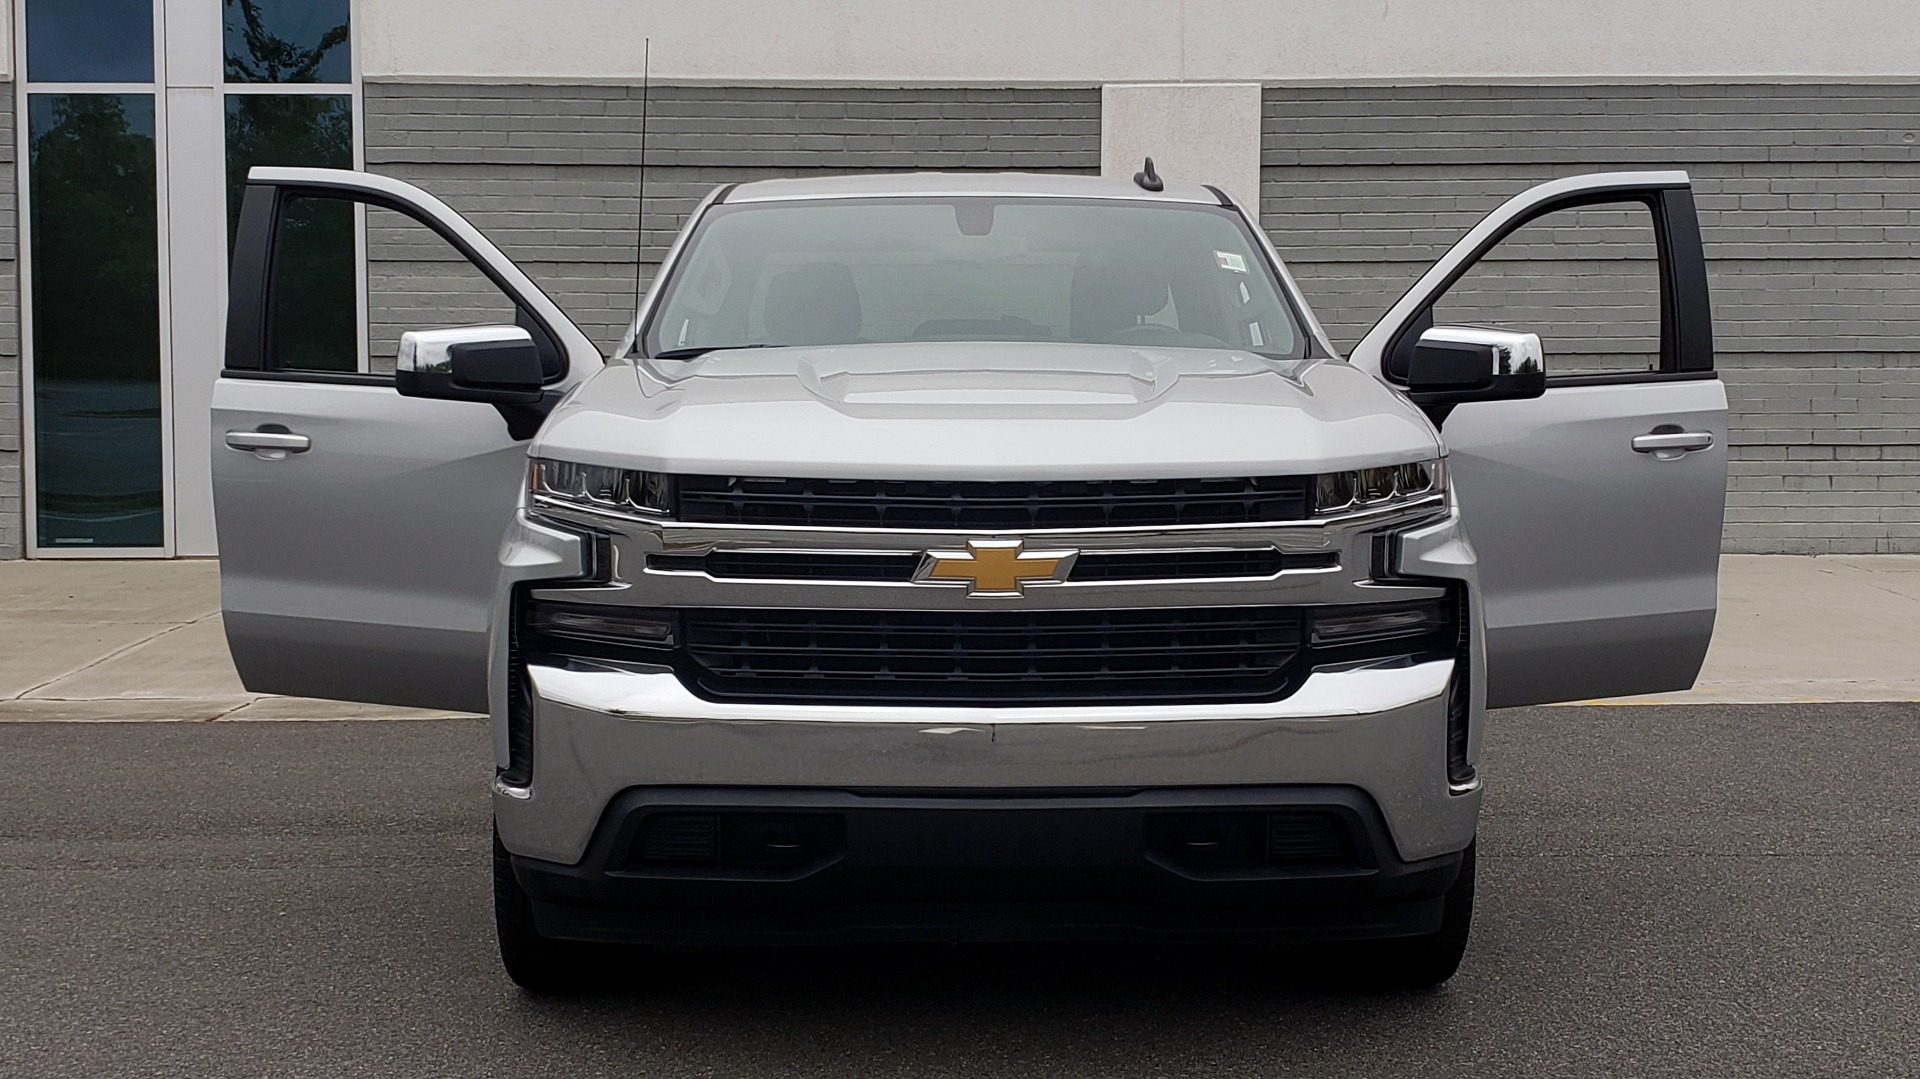 Used 2020 Chevrolet SILVERADO 1500 LT 4WD DOUBLECAB 147 WB / 5.3L V8 / BEDLINER / REARVIEW for sale $41,995 at Formula Imports in Charlotte NC 28227 19